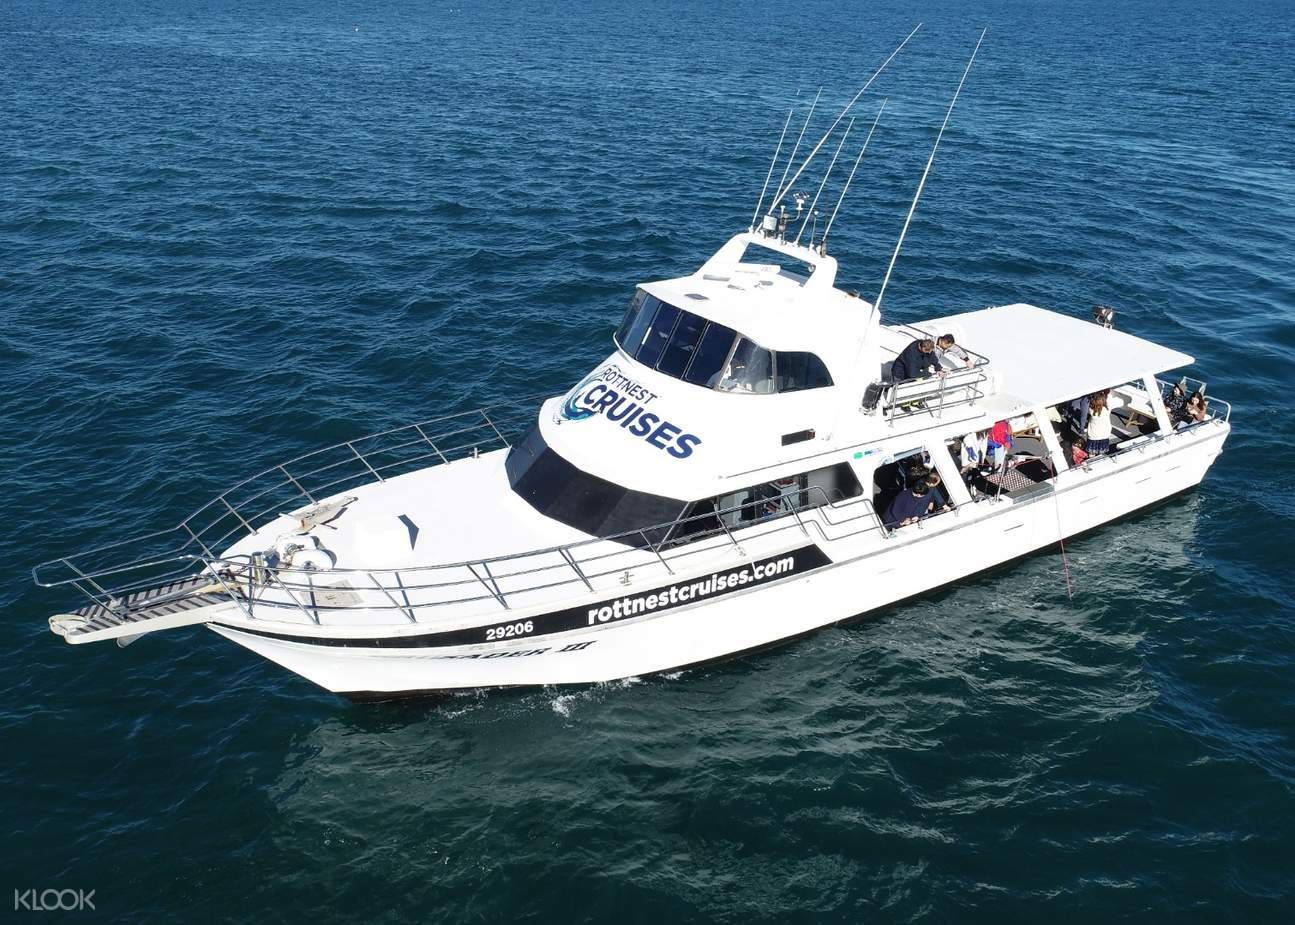 boat cruising in rottnest island seafood experience